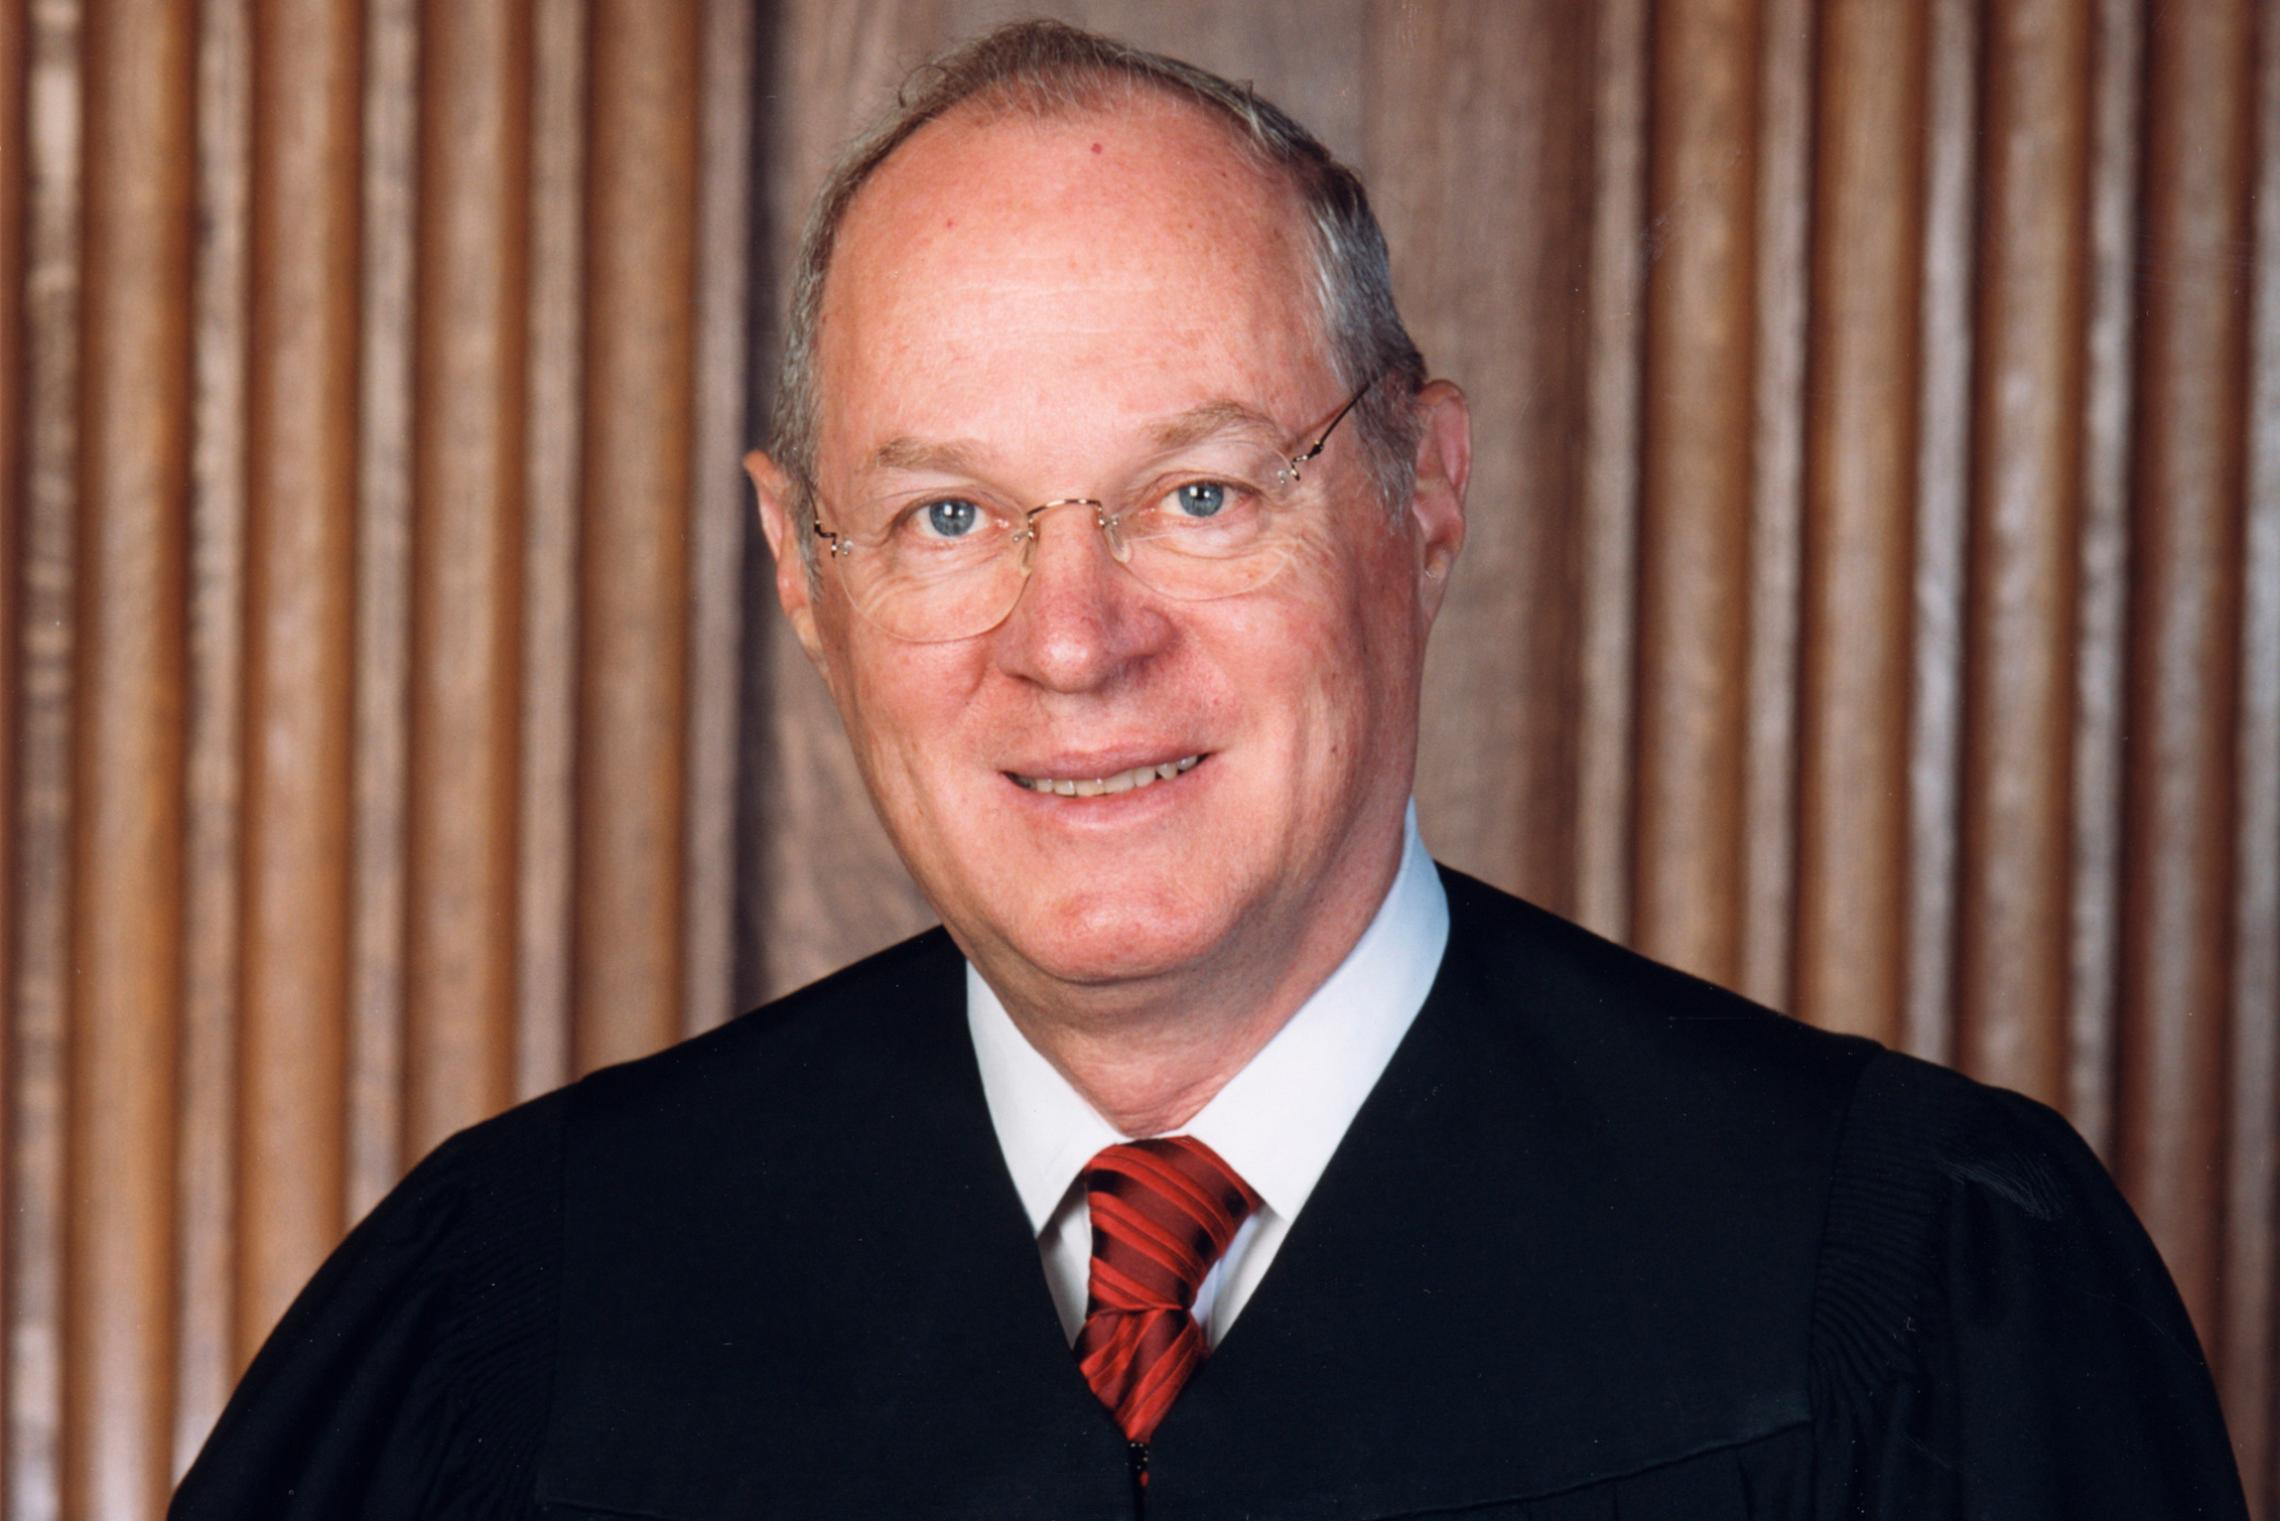 Justice Anthony Kennedy announced his retirement from the Supreme Court on Wednesday. (Photo courtesy of UVA's School of Law)